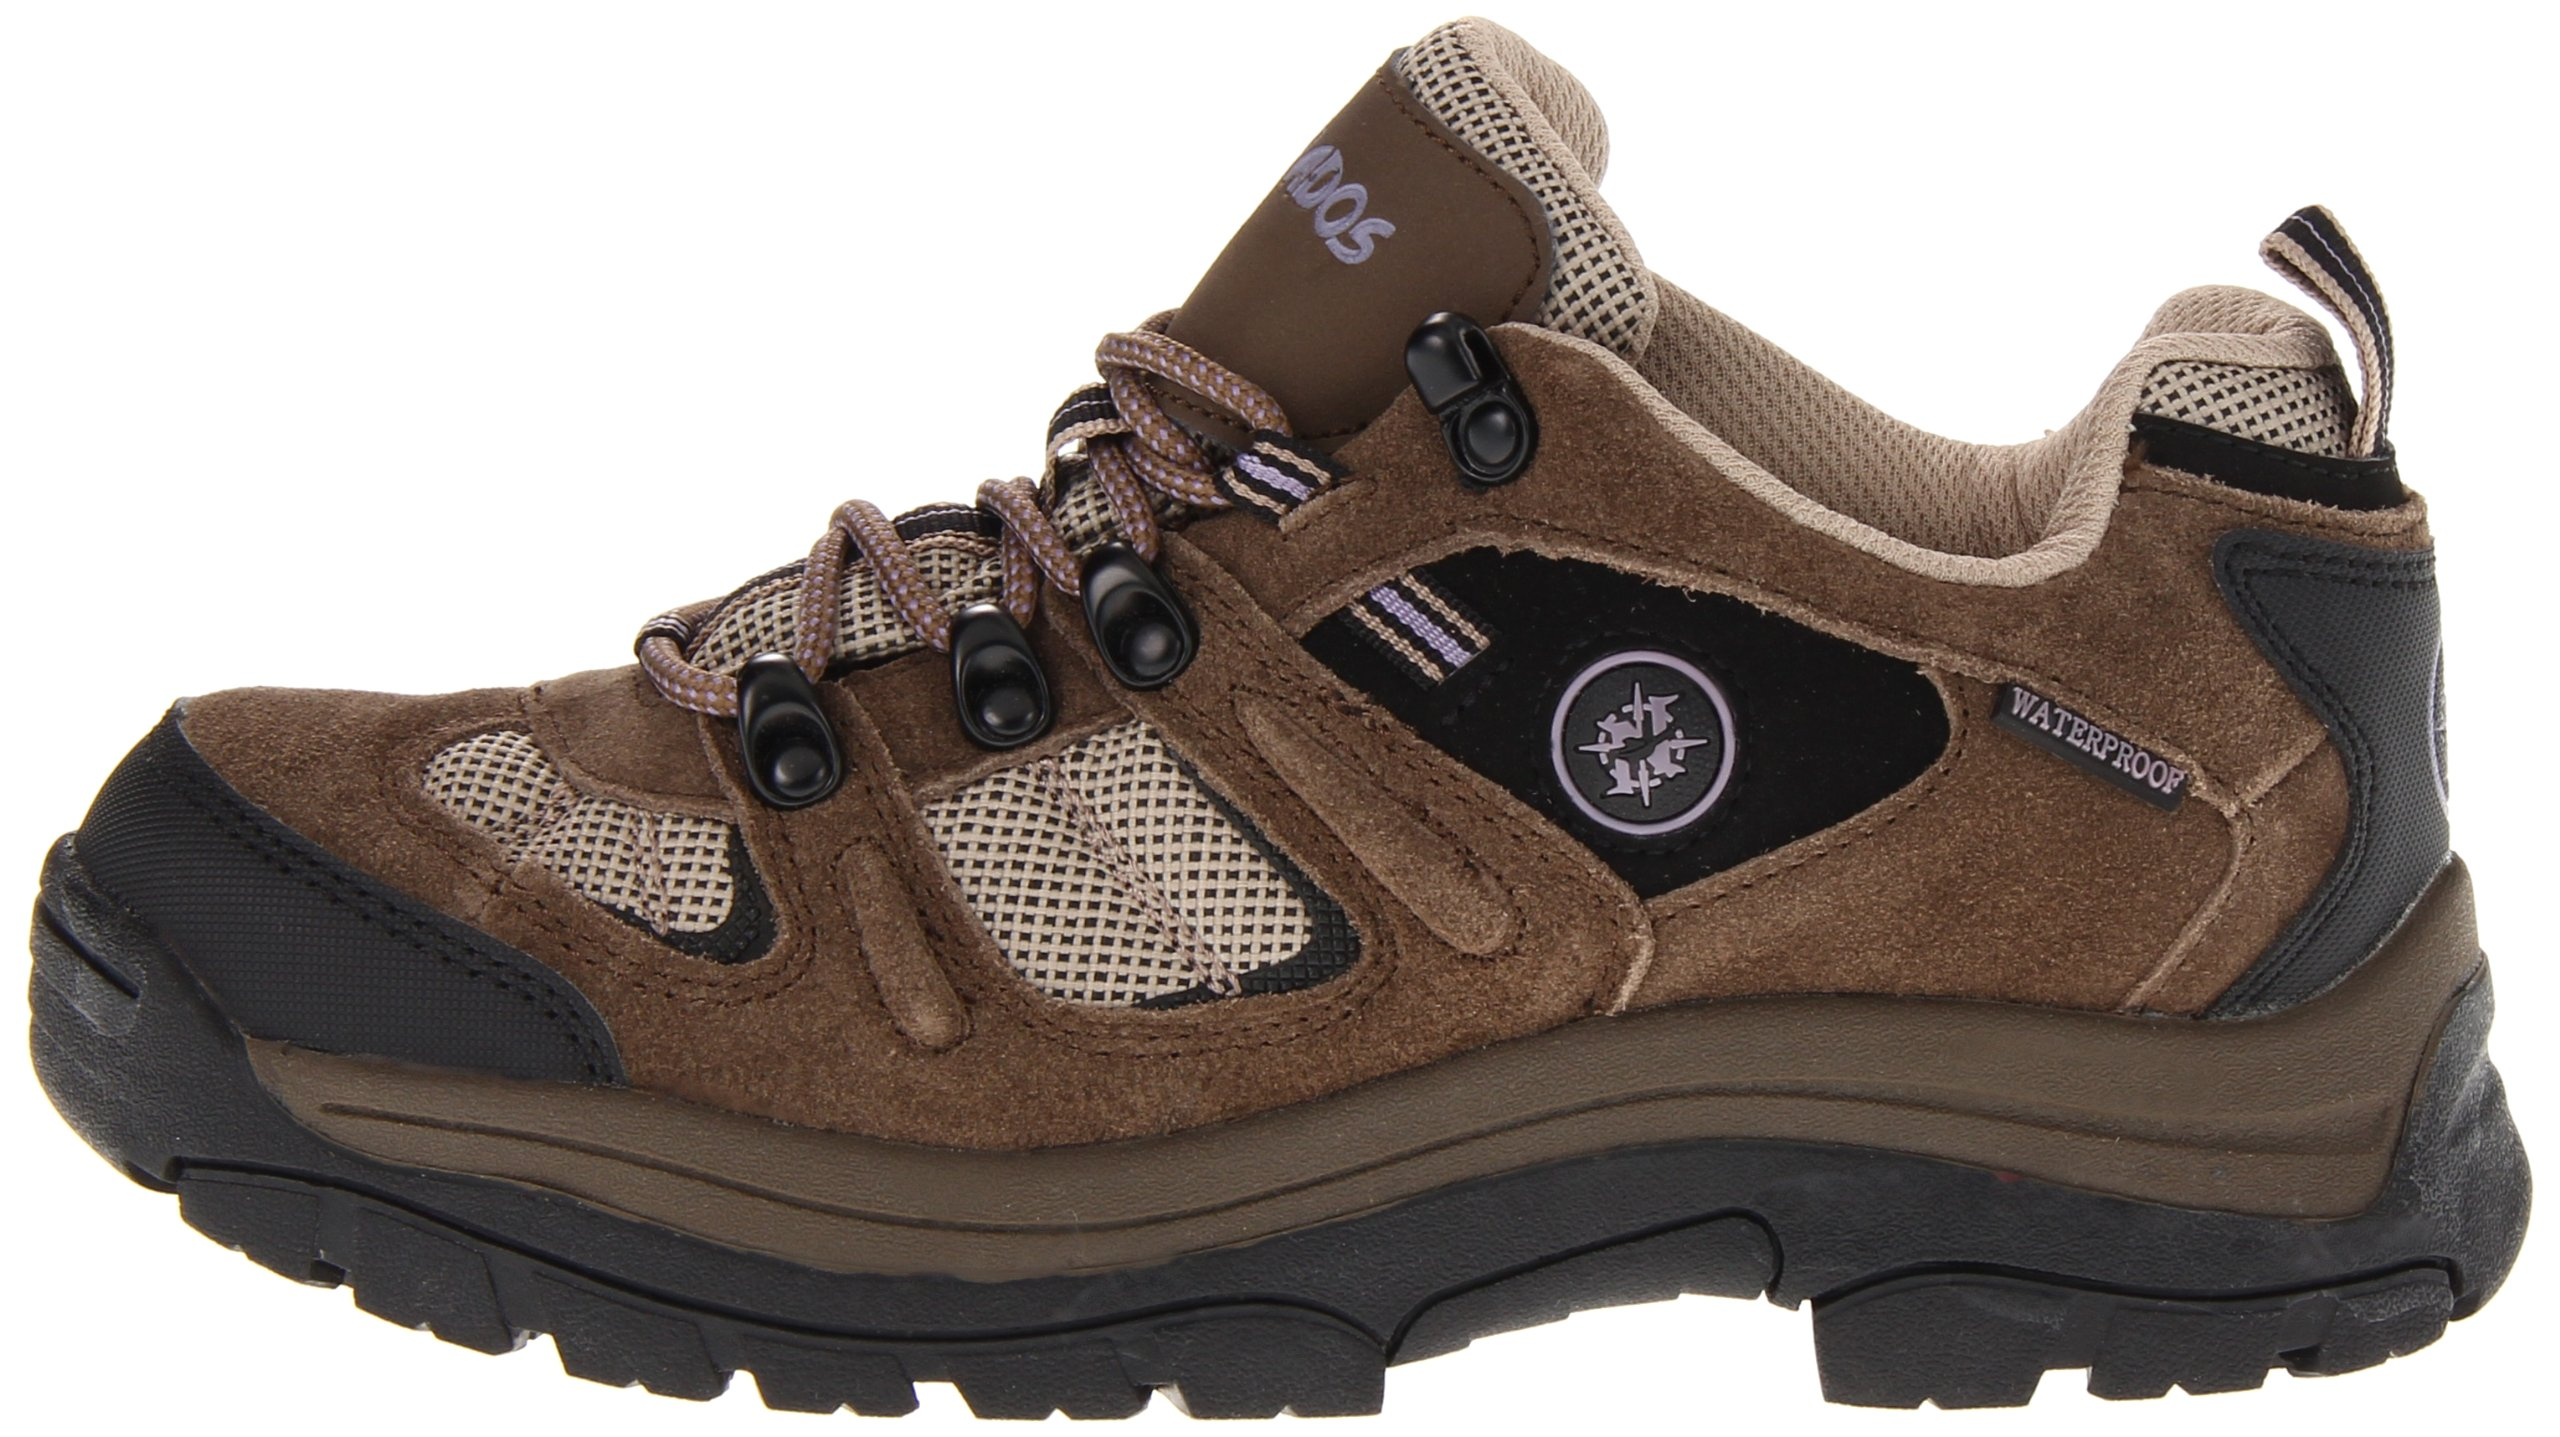 Nevados Women's Klondike Waterproof Low V4161W Hiking Boot,Dark Brown/Black/Taupe,9.5 M US by Nevados (Image #5)